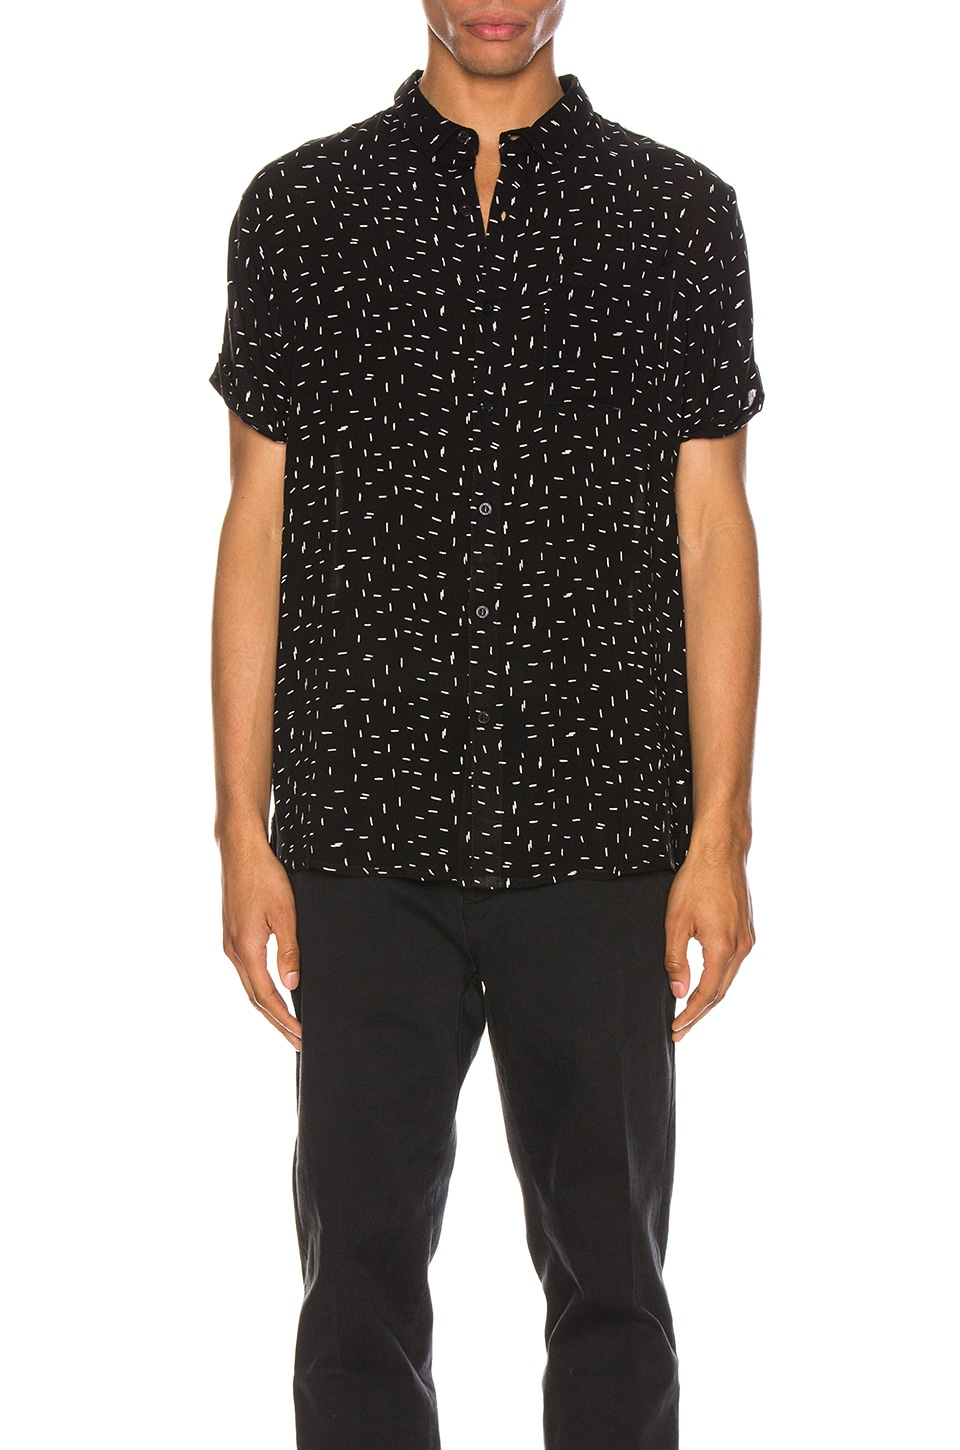 ROLLA'S Beach Boy Dash Print Shirt in Black